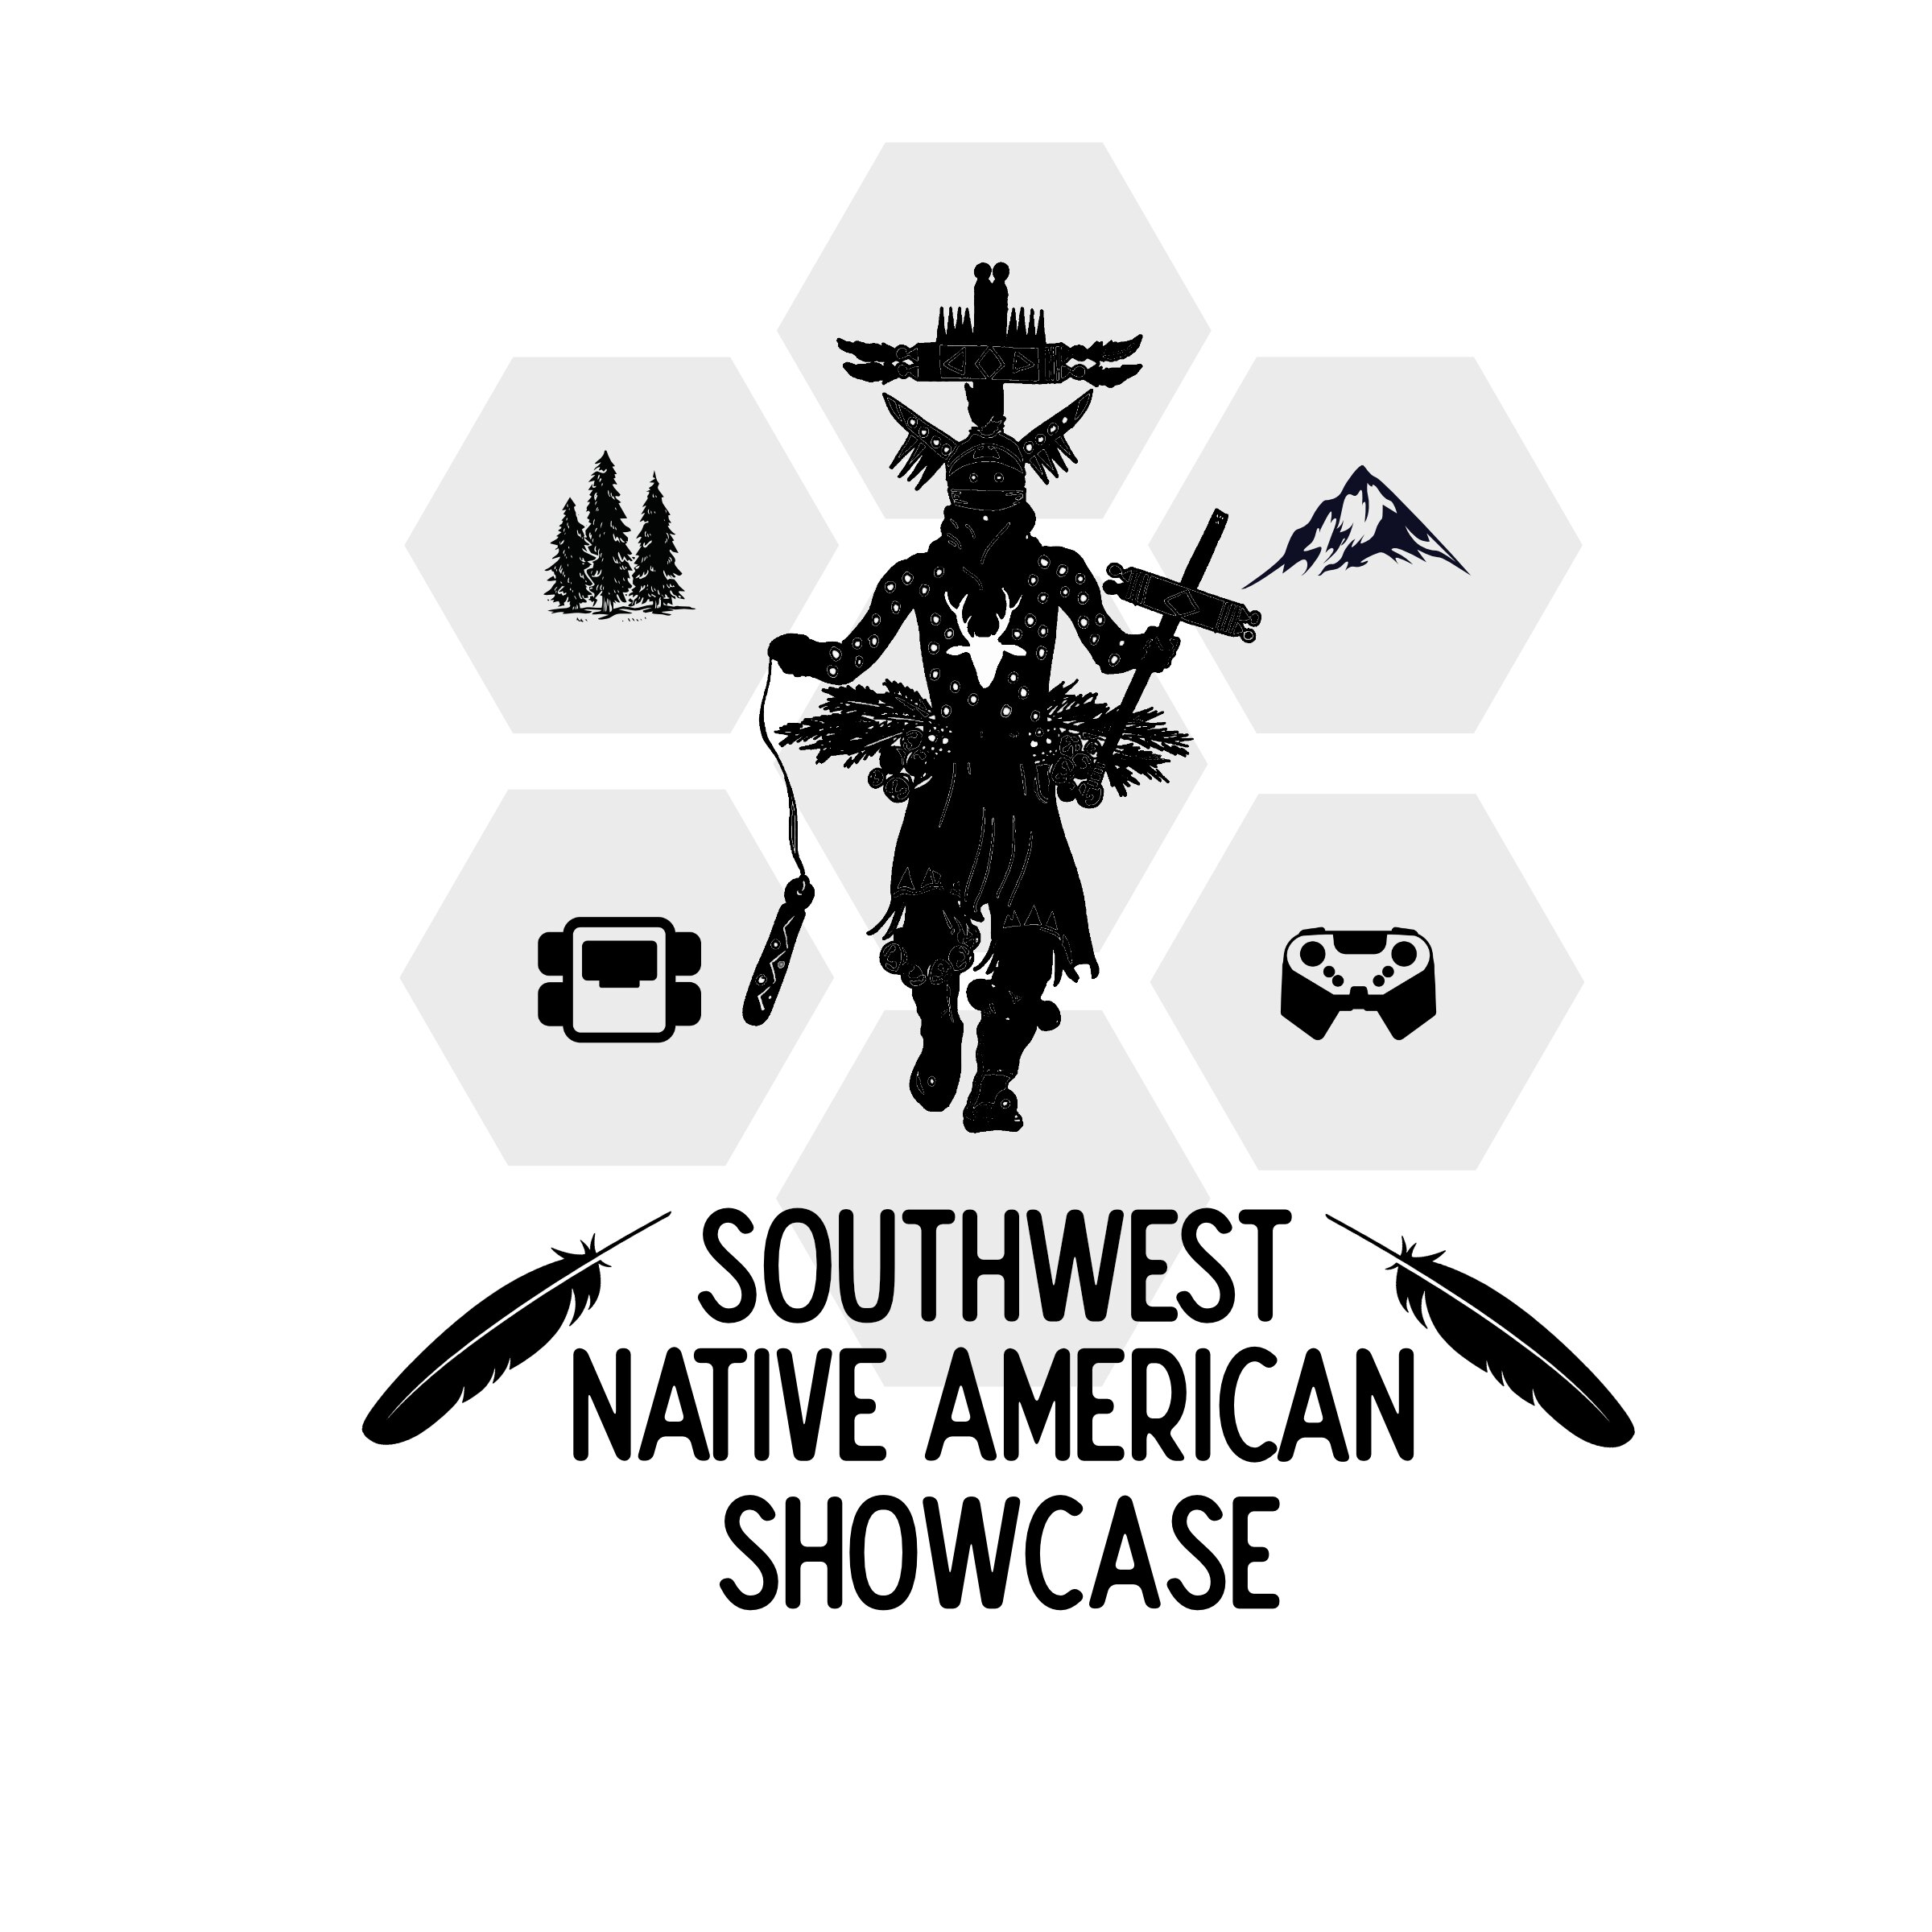 VRC, White Mountain Apache Southwest Native American Showcase Event, Remote Skills-Only, Blended MS & HS, Remote Judging